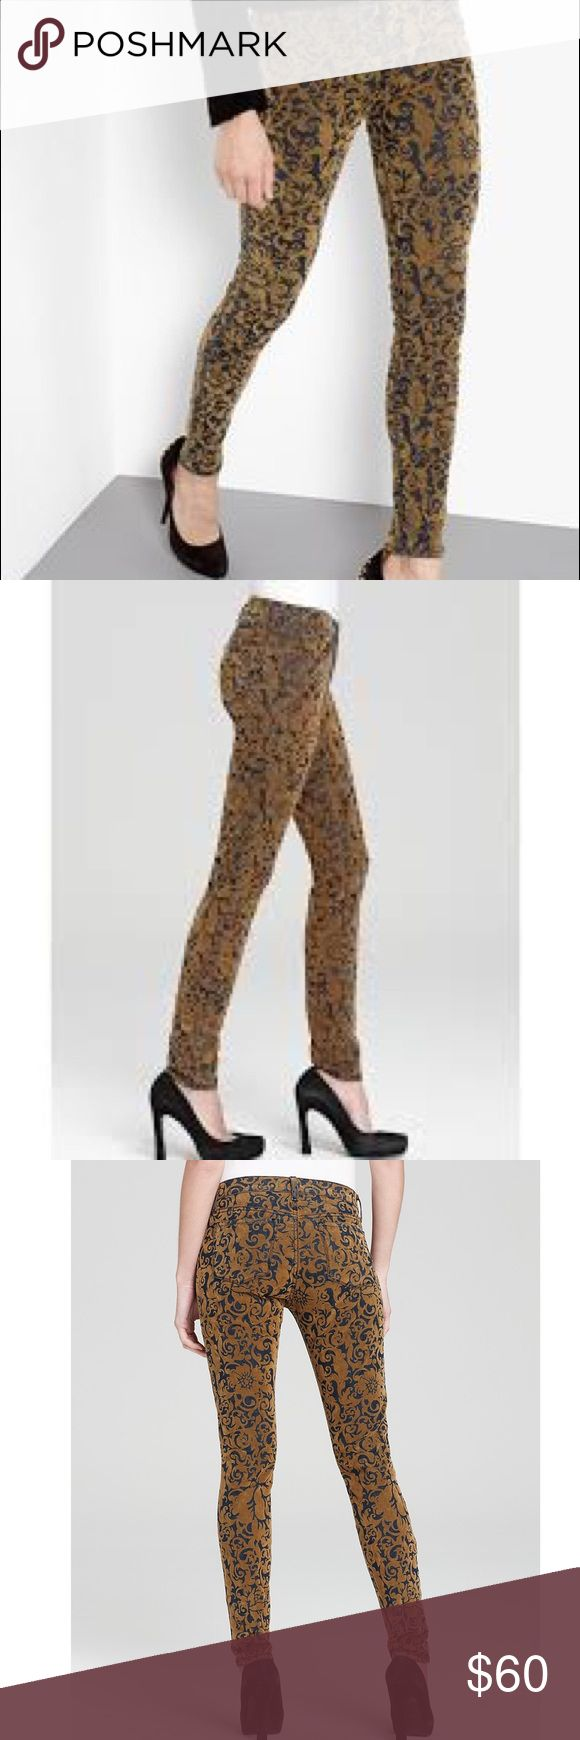 JBRAND METALLIC MID RISE 811 SKINNY GOLD BROCADE Amazing JBRAND Women's Metallic Jeans Mid Rise 811 Skinny in Gold Brocade. Worn only a few times-stretchy! 97% cotton, 3% polyester. Beautiful and unique! J Brand Pants Skinny